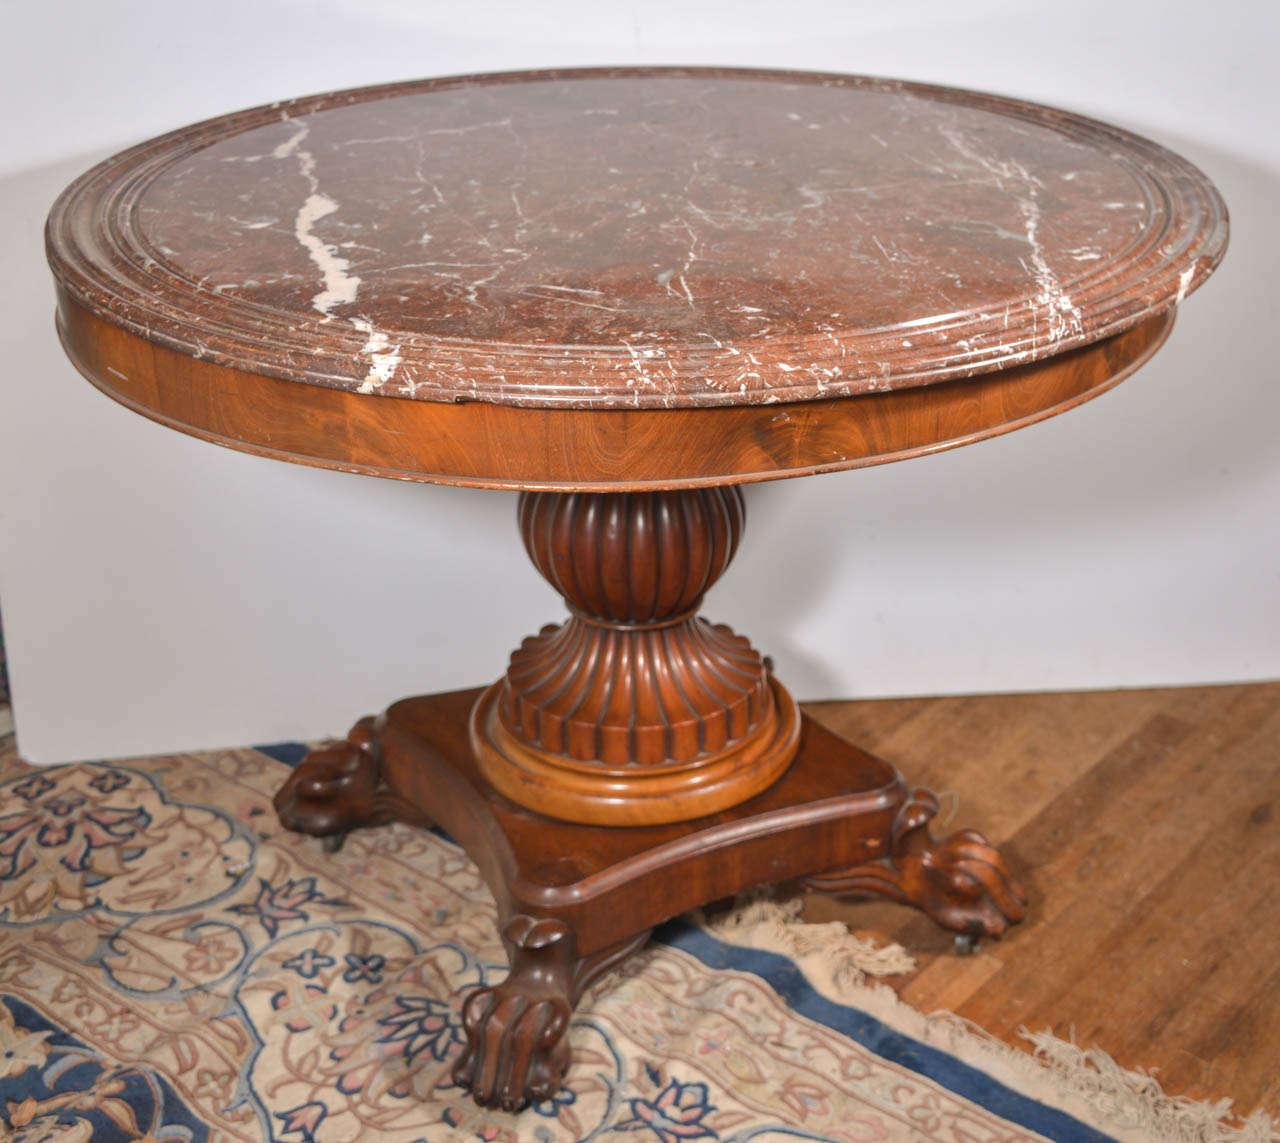 King louis philippe period marble top center table for for Table louis philippe